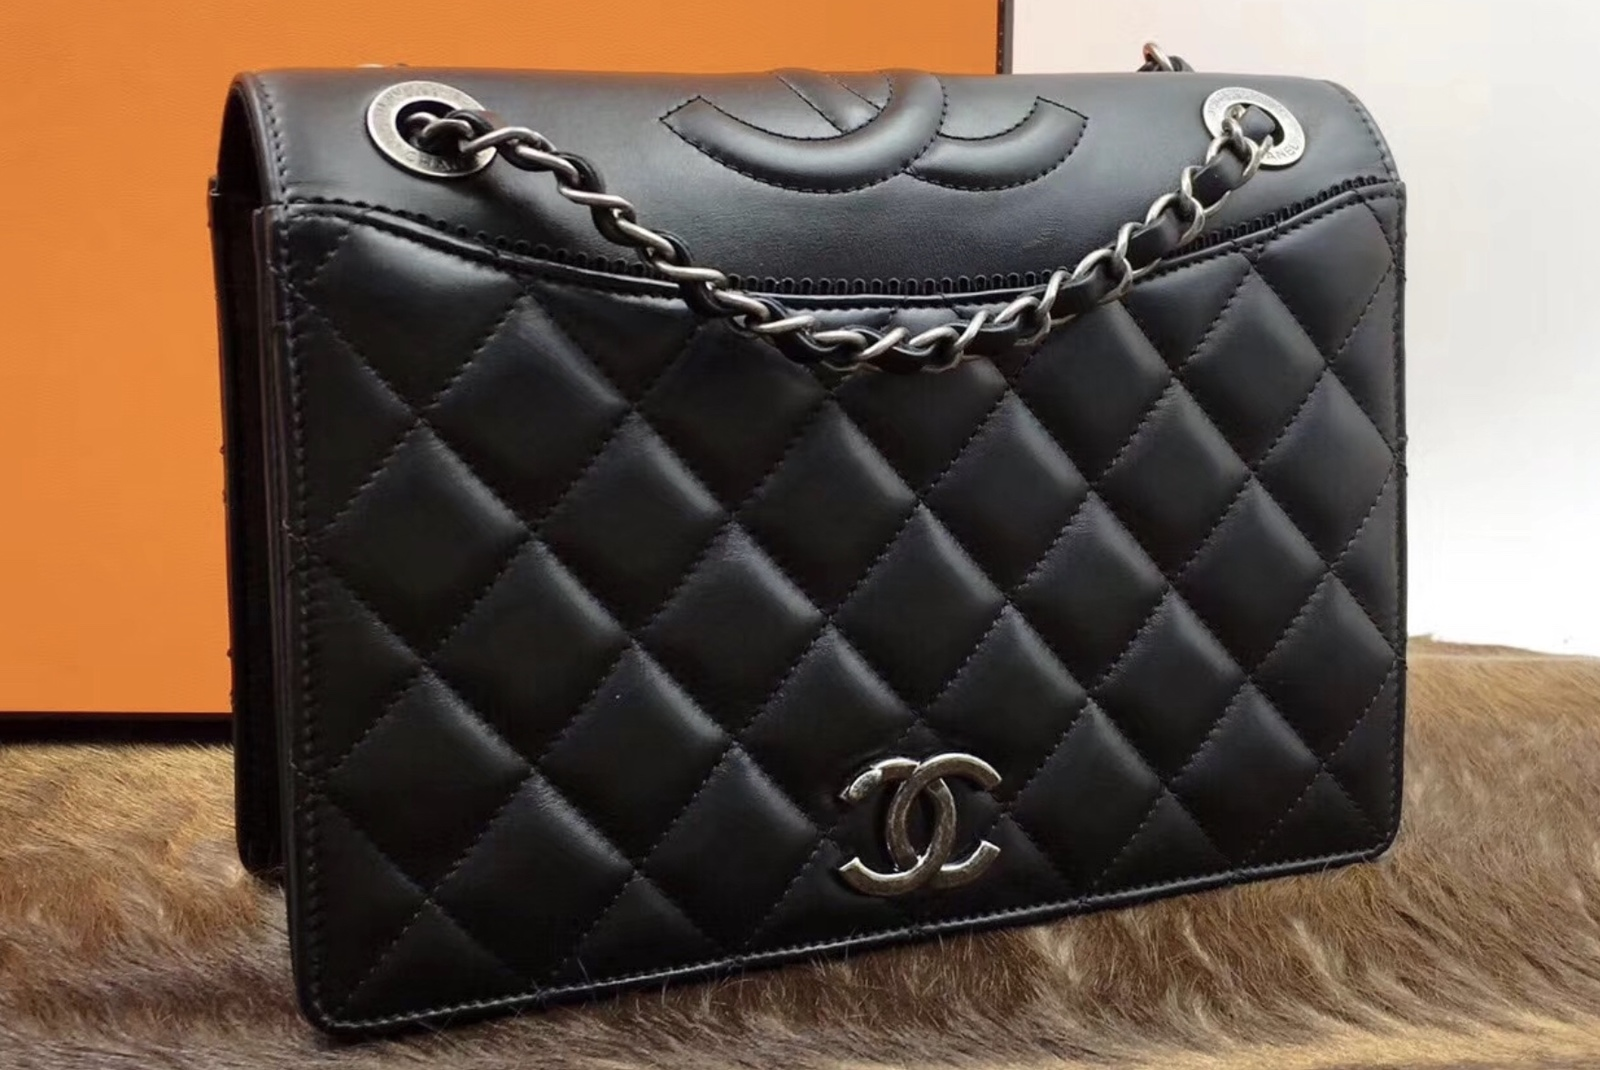 BRAND NEW AUTHENTIC CHANEL 2017 BLACK QUILTED LEATHER FLAP BAG